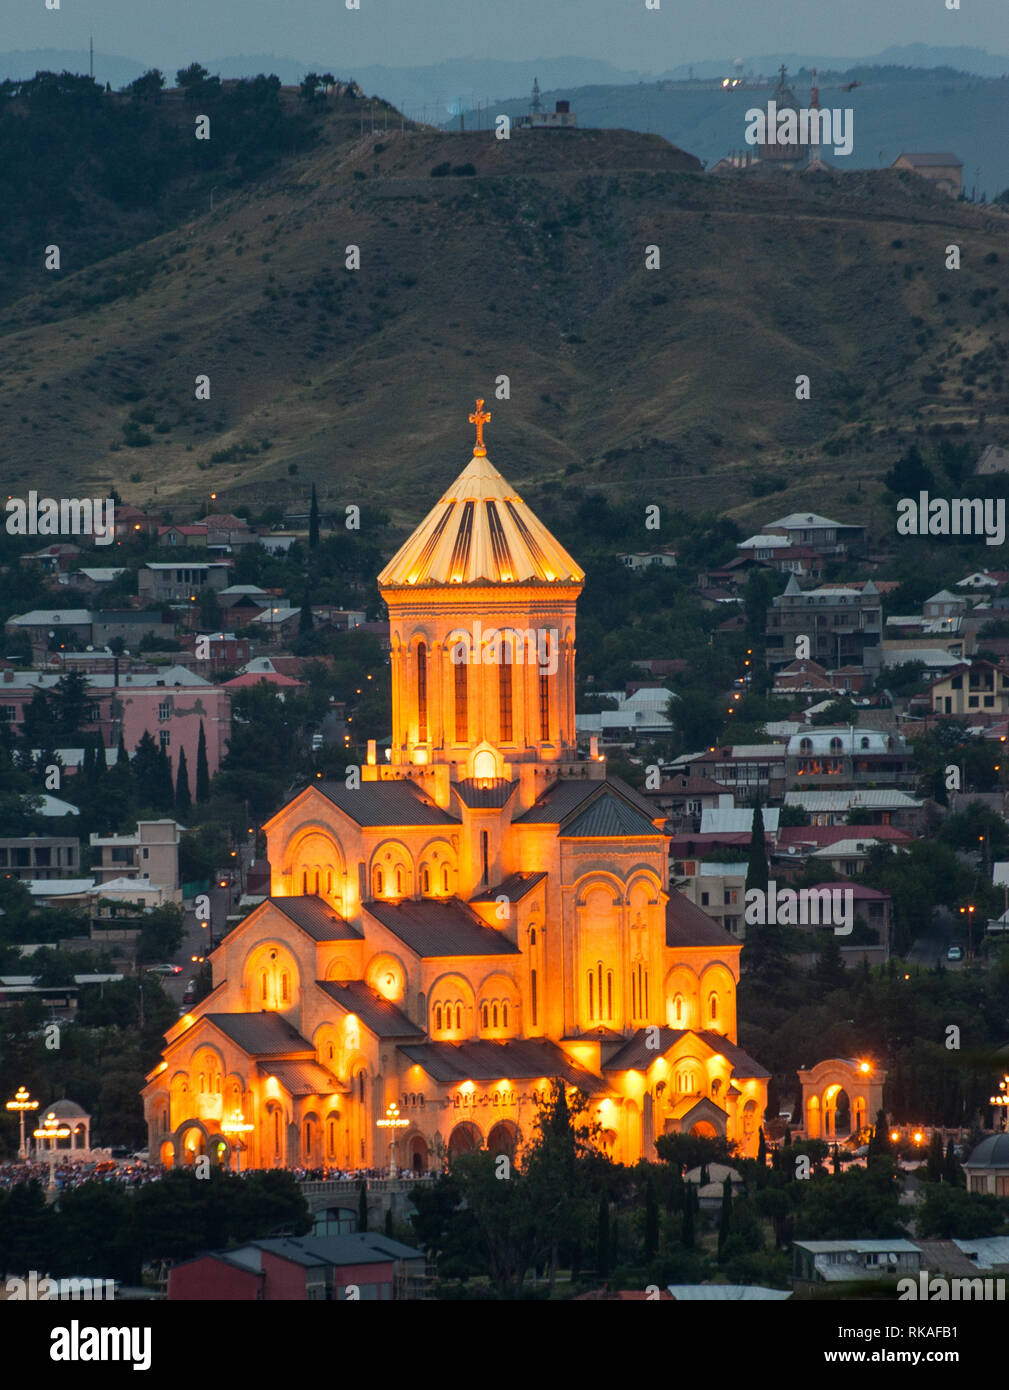 The Holy Trinity Cathedral of Tbilisi was completed in 2004 to celebrate the 2000 years since the birth of Jesus Christ and 1500 years of the Georgian - Stock Image